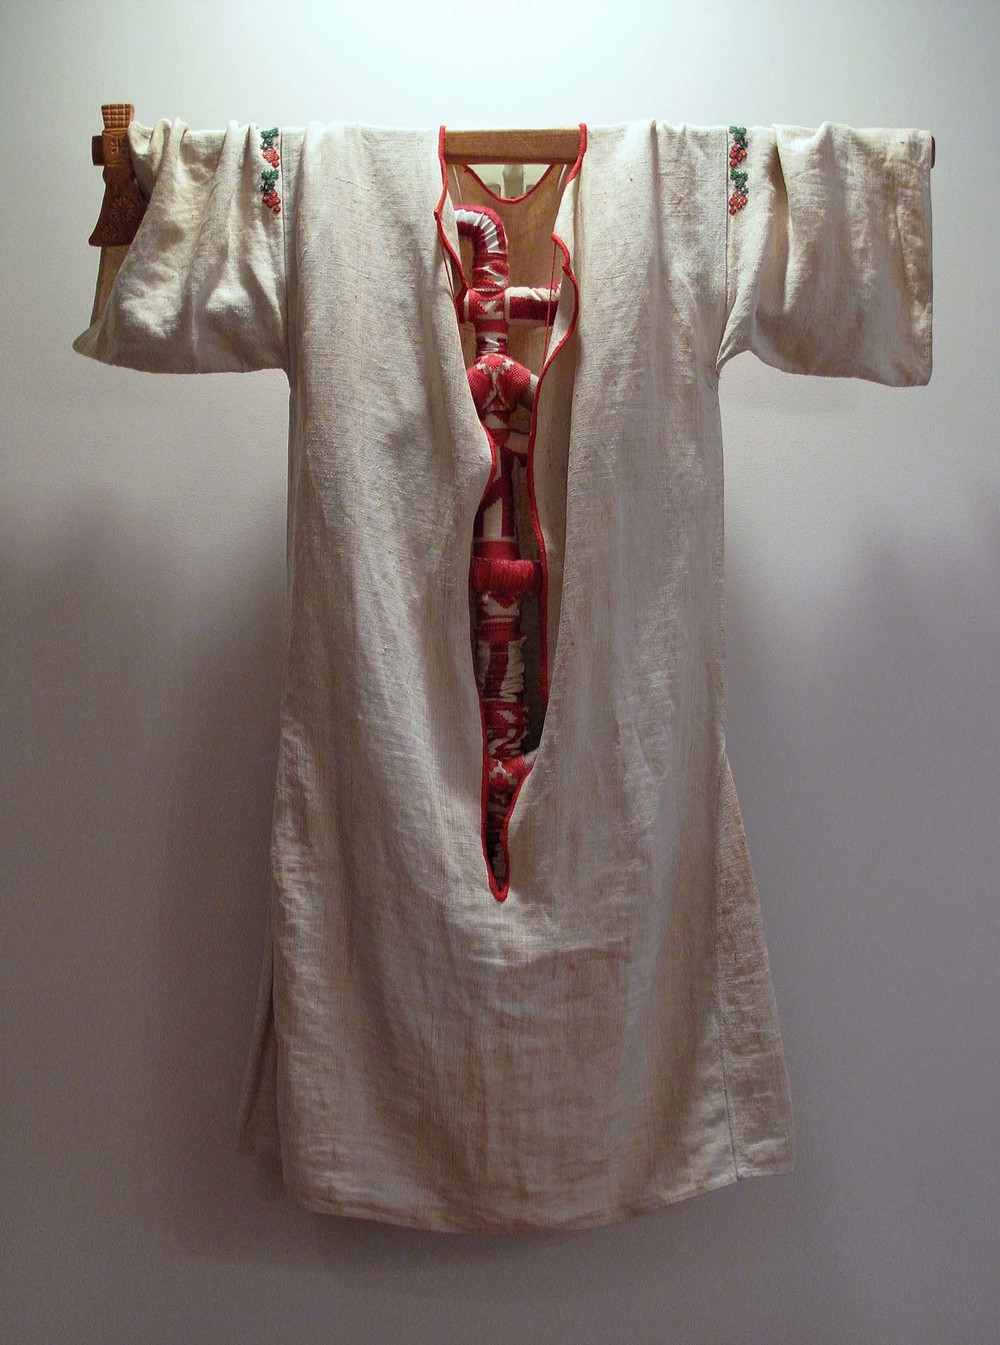 2bf(0) - What Sits In My Guts, embroidered sewn linen, letters, molded tubing, metal rod, wood, 40x32x7 in., 2008-9.jpg